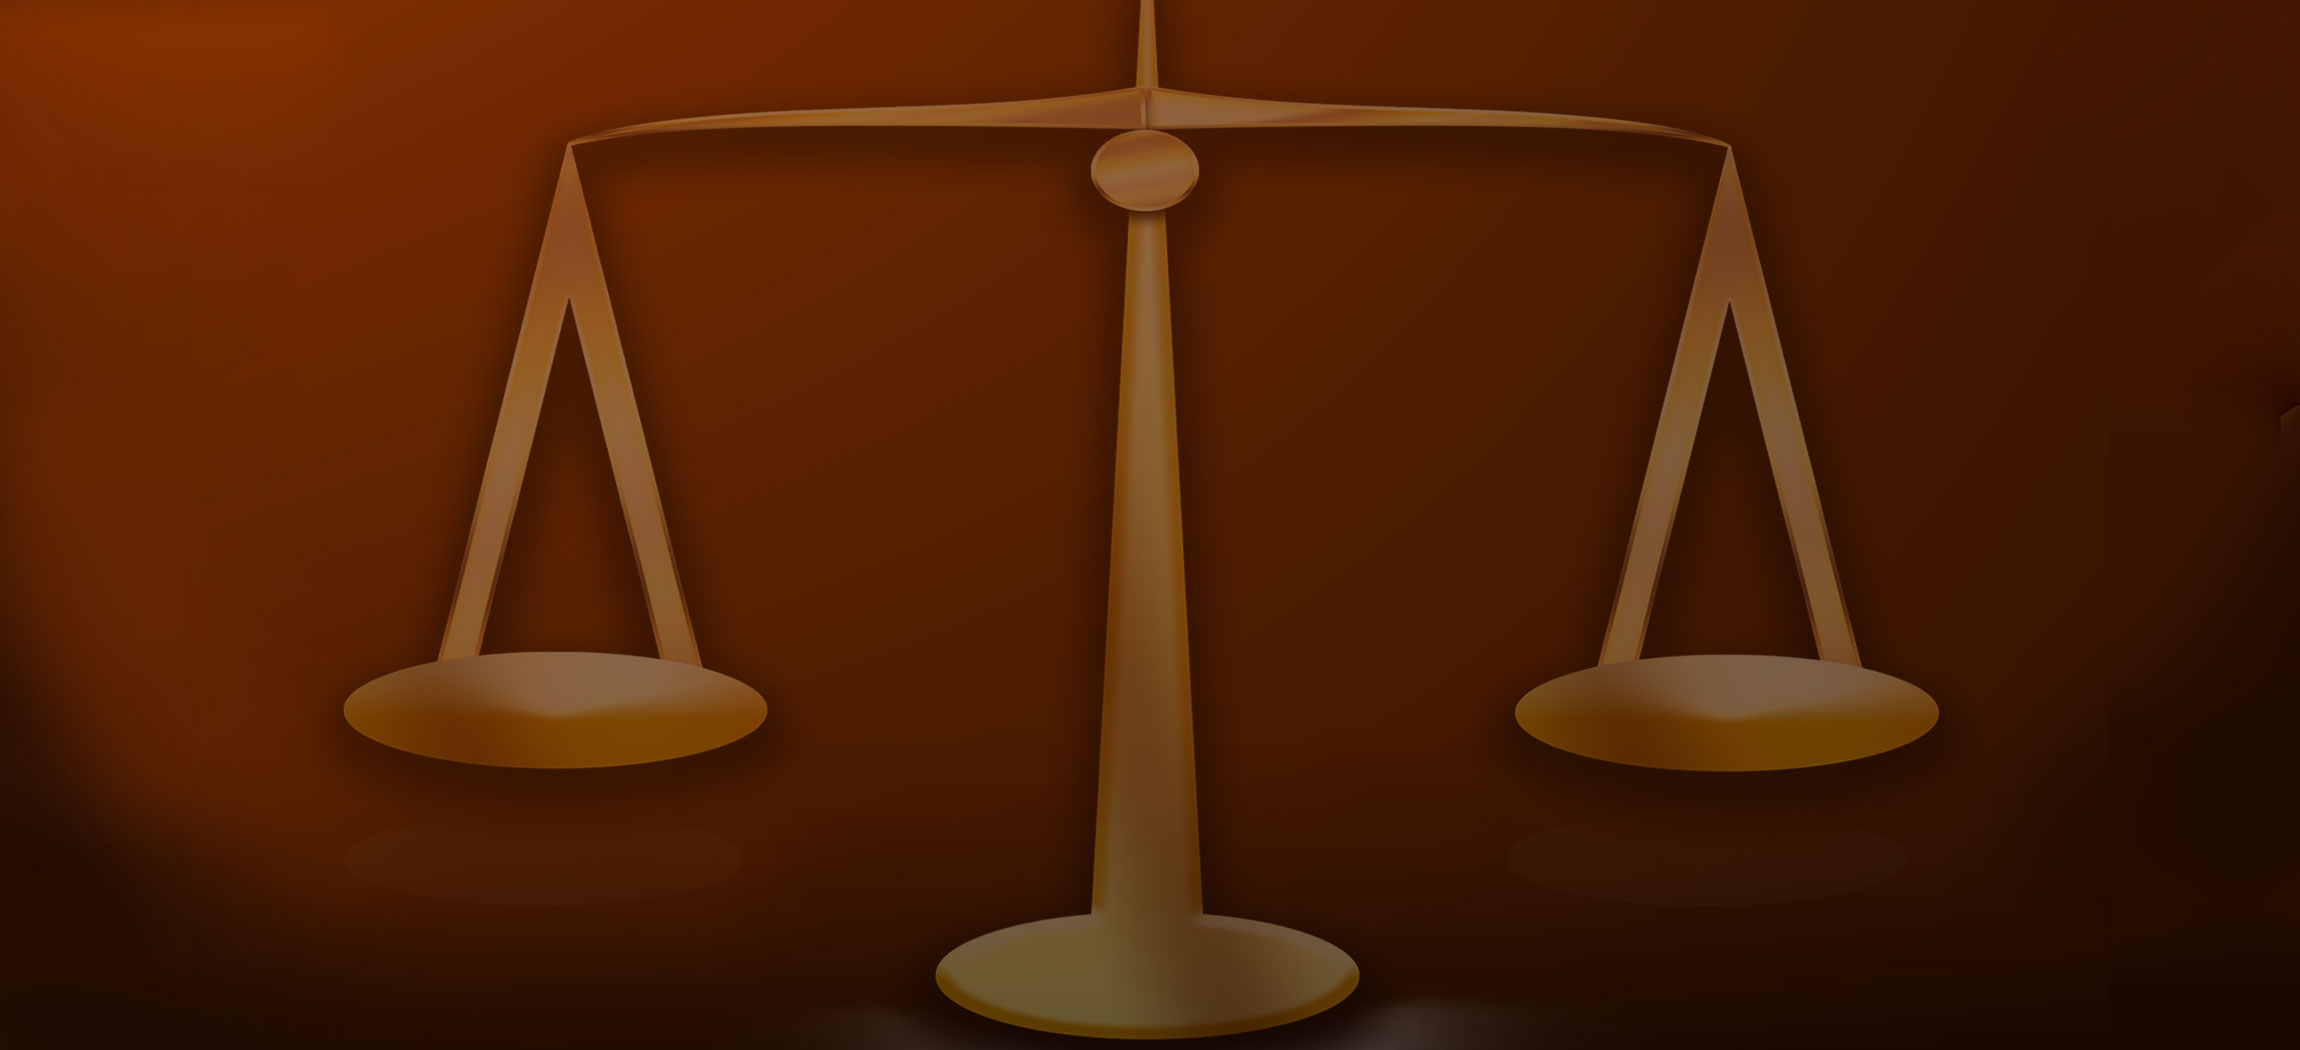 scales of justice court-system-gavel-court-generic-sentencing-court-appearance_1529076492158.jpg